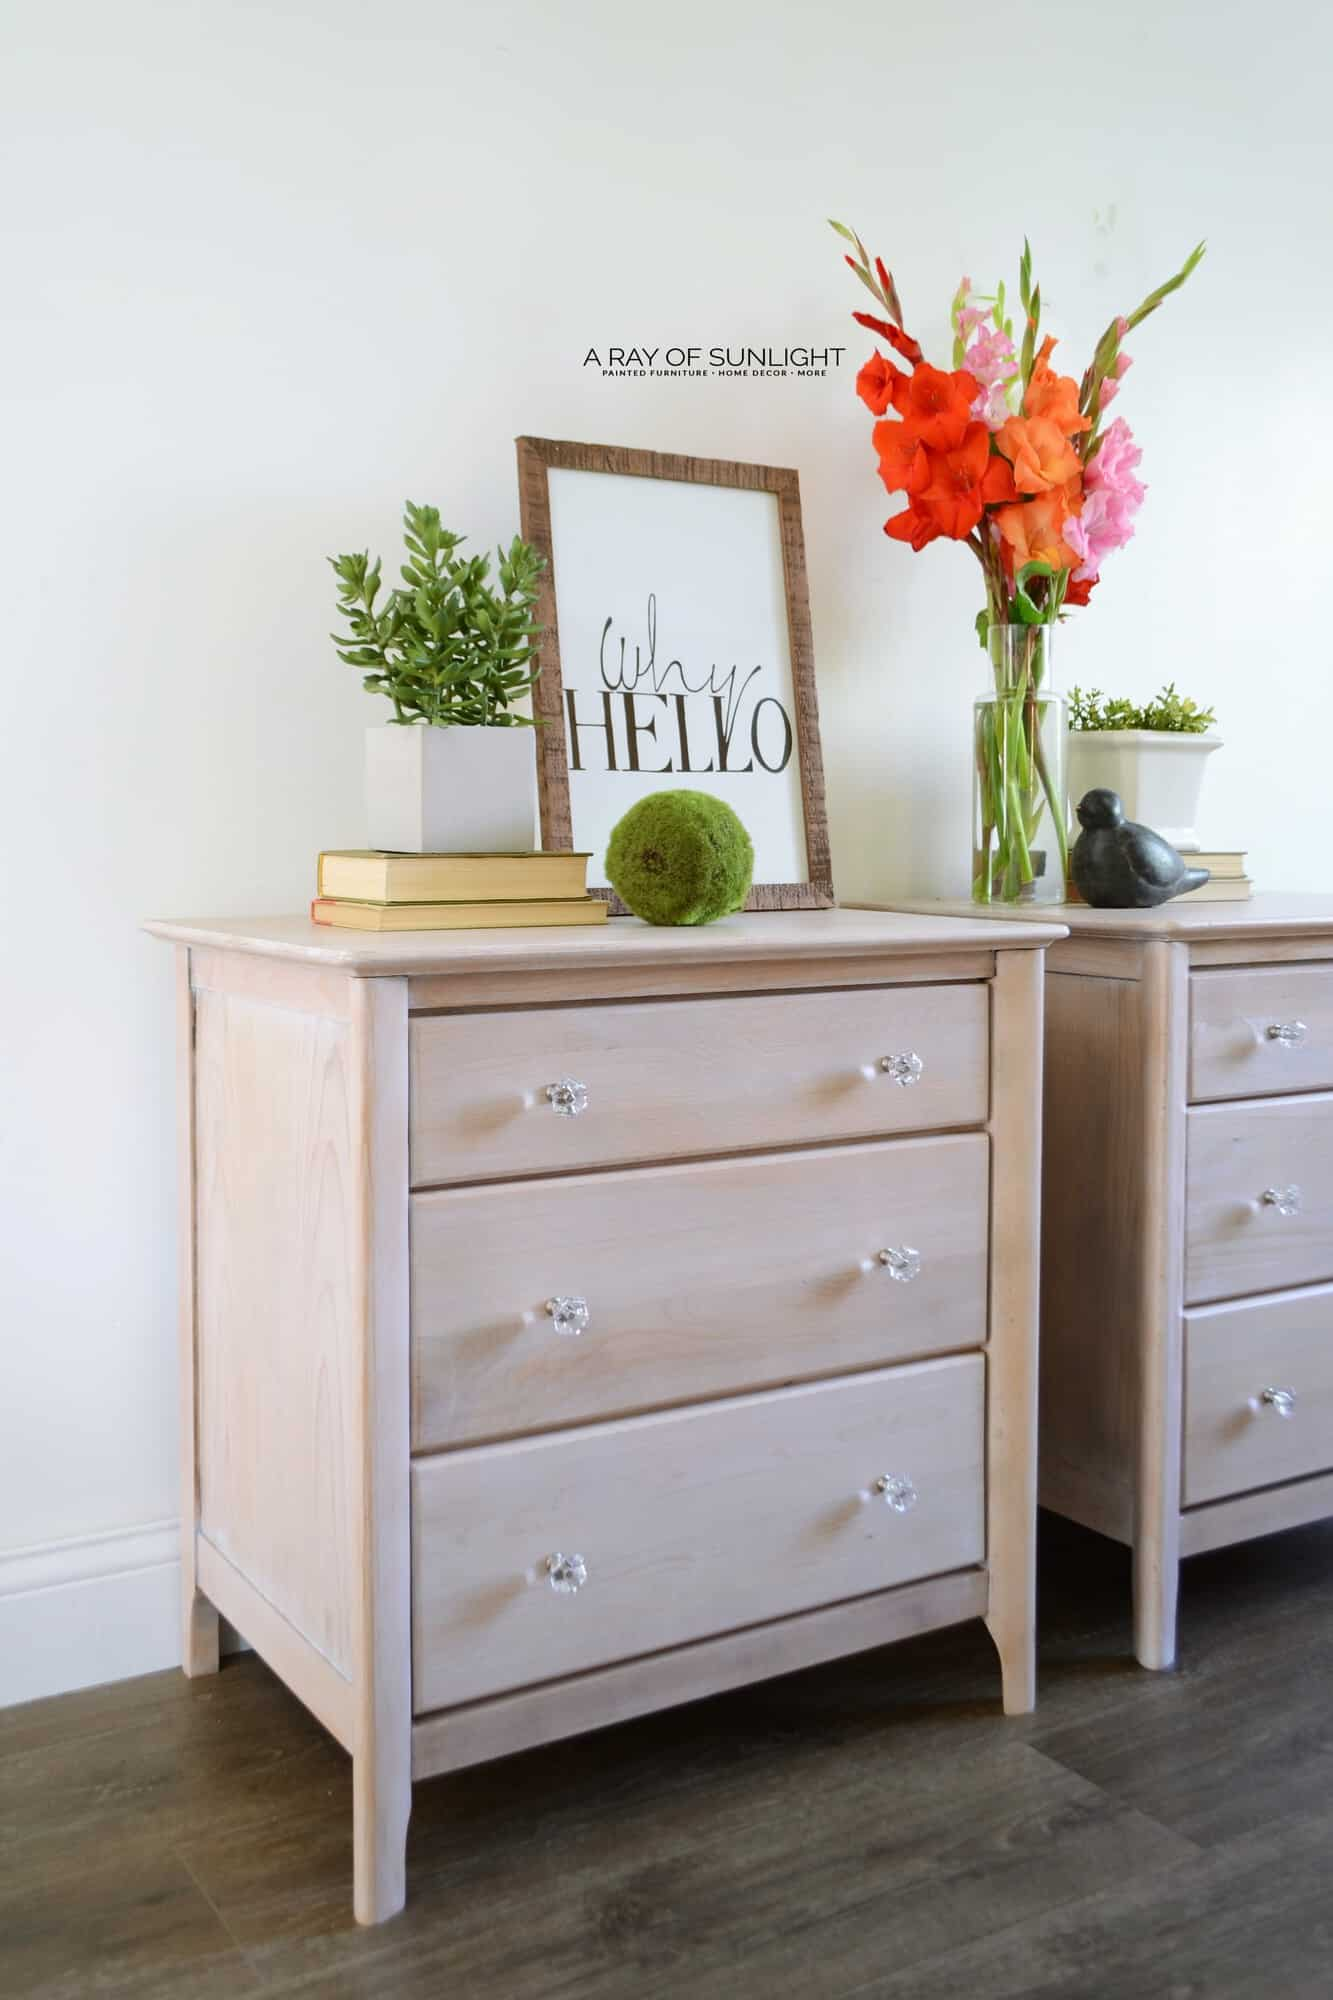 How you can get this modern raw wood look on your next DIY furniture project in simple and easy to follow steps.